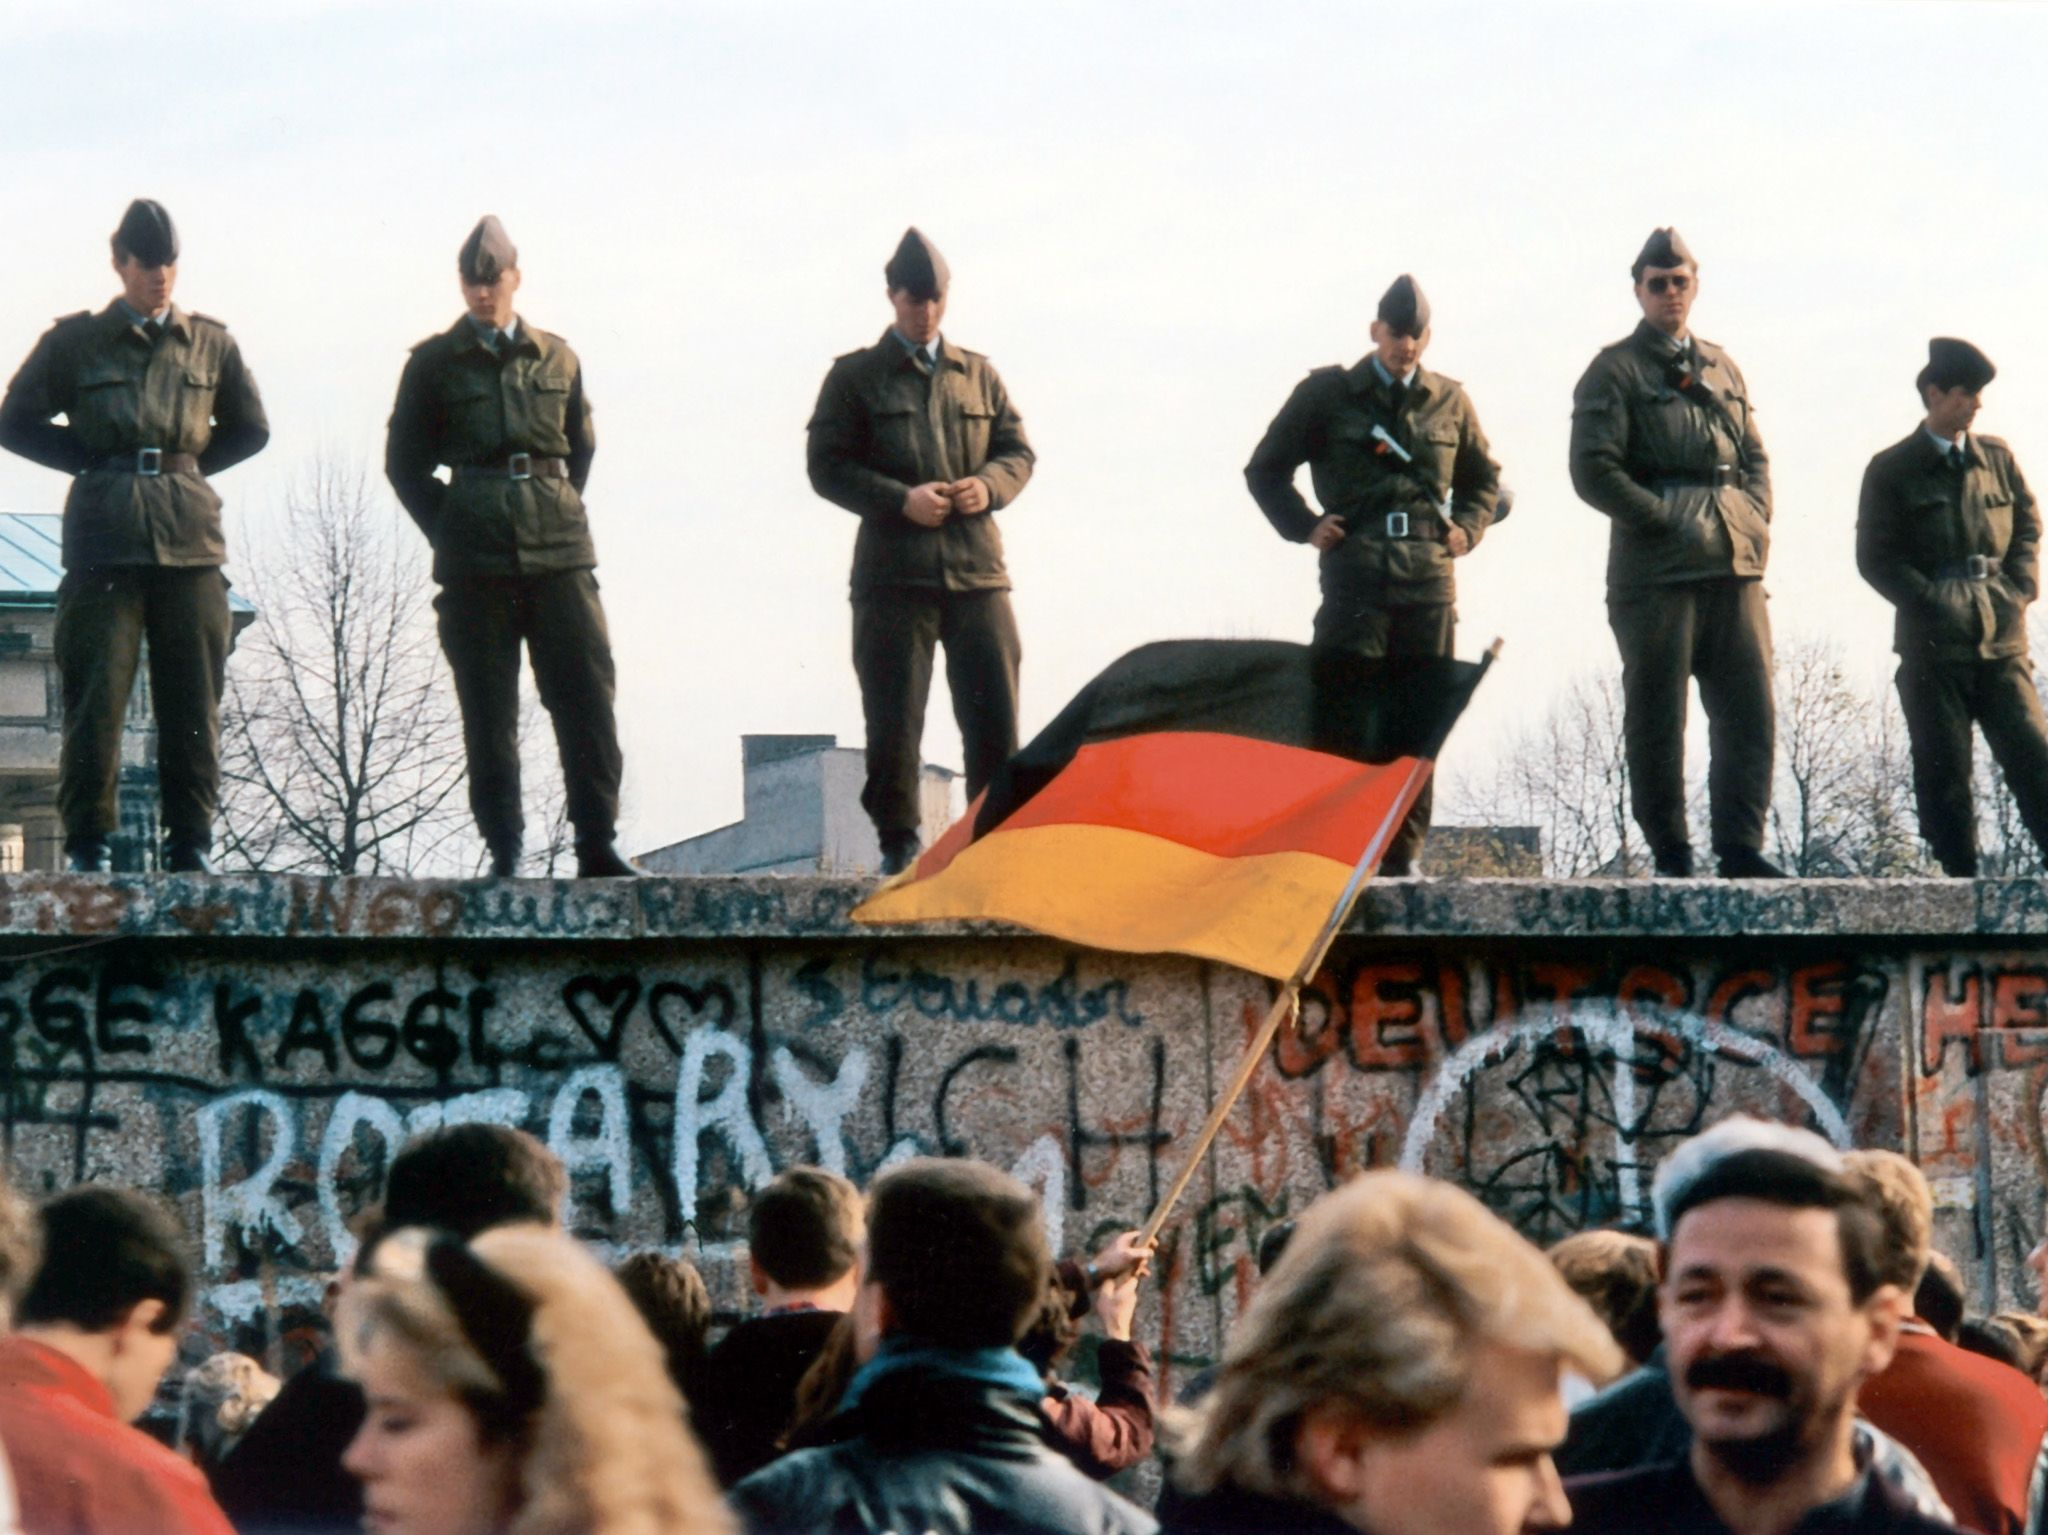 Soldiers on the Berlin Wall. This image is from Decades Remixed: The '80s Greatest. [Photo of the day - October 2018]